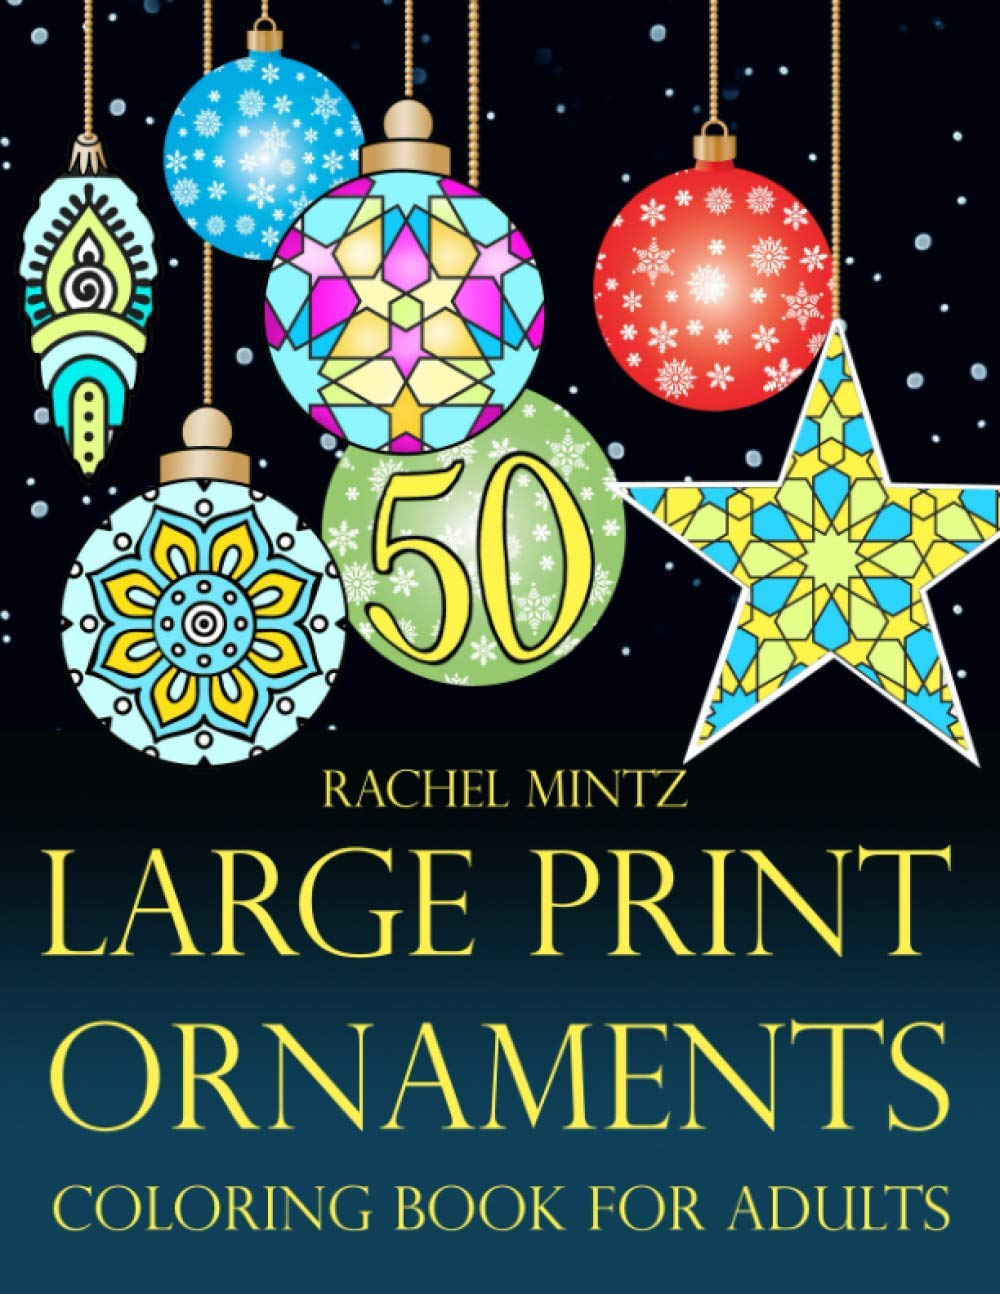 50 Large Print Ornaments Coloring Book For Adults 50 Easy Christmas Tree Decorations To Color Simple Xmas Designs For Beginners And Visually Impaired Mintz Rachel 9798578788994 Amazon Com Books